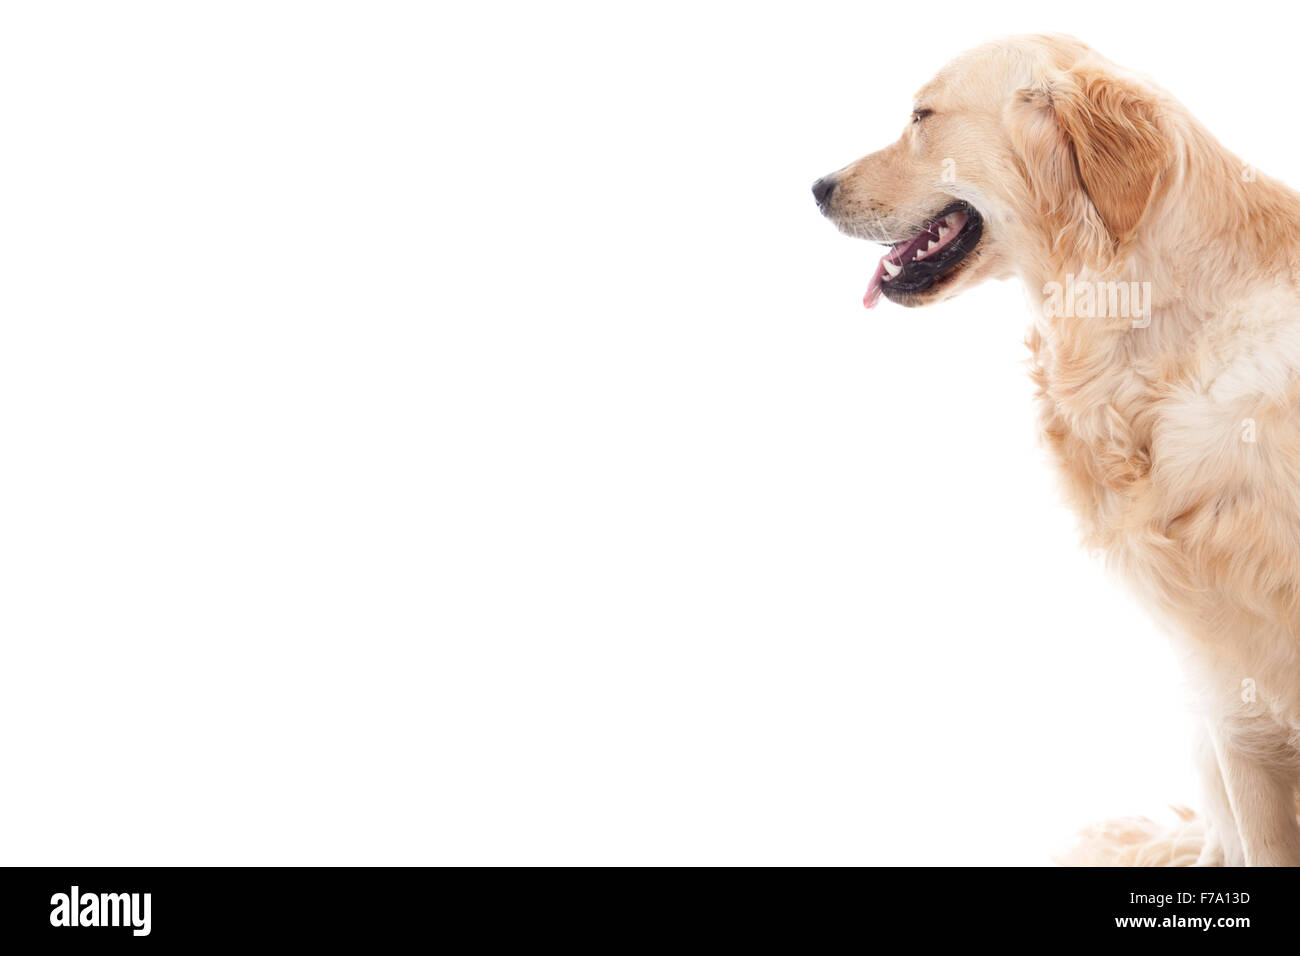 Happy dog photographed in the studio on a white background - Stock Image